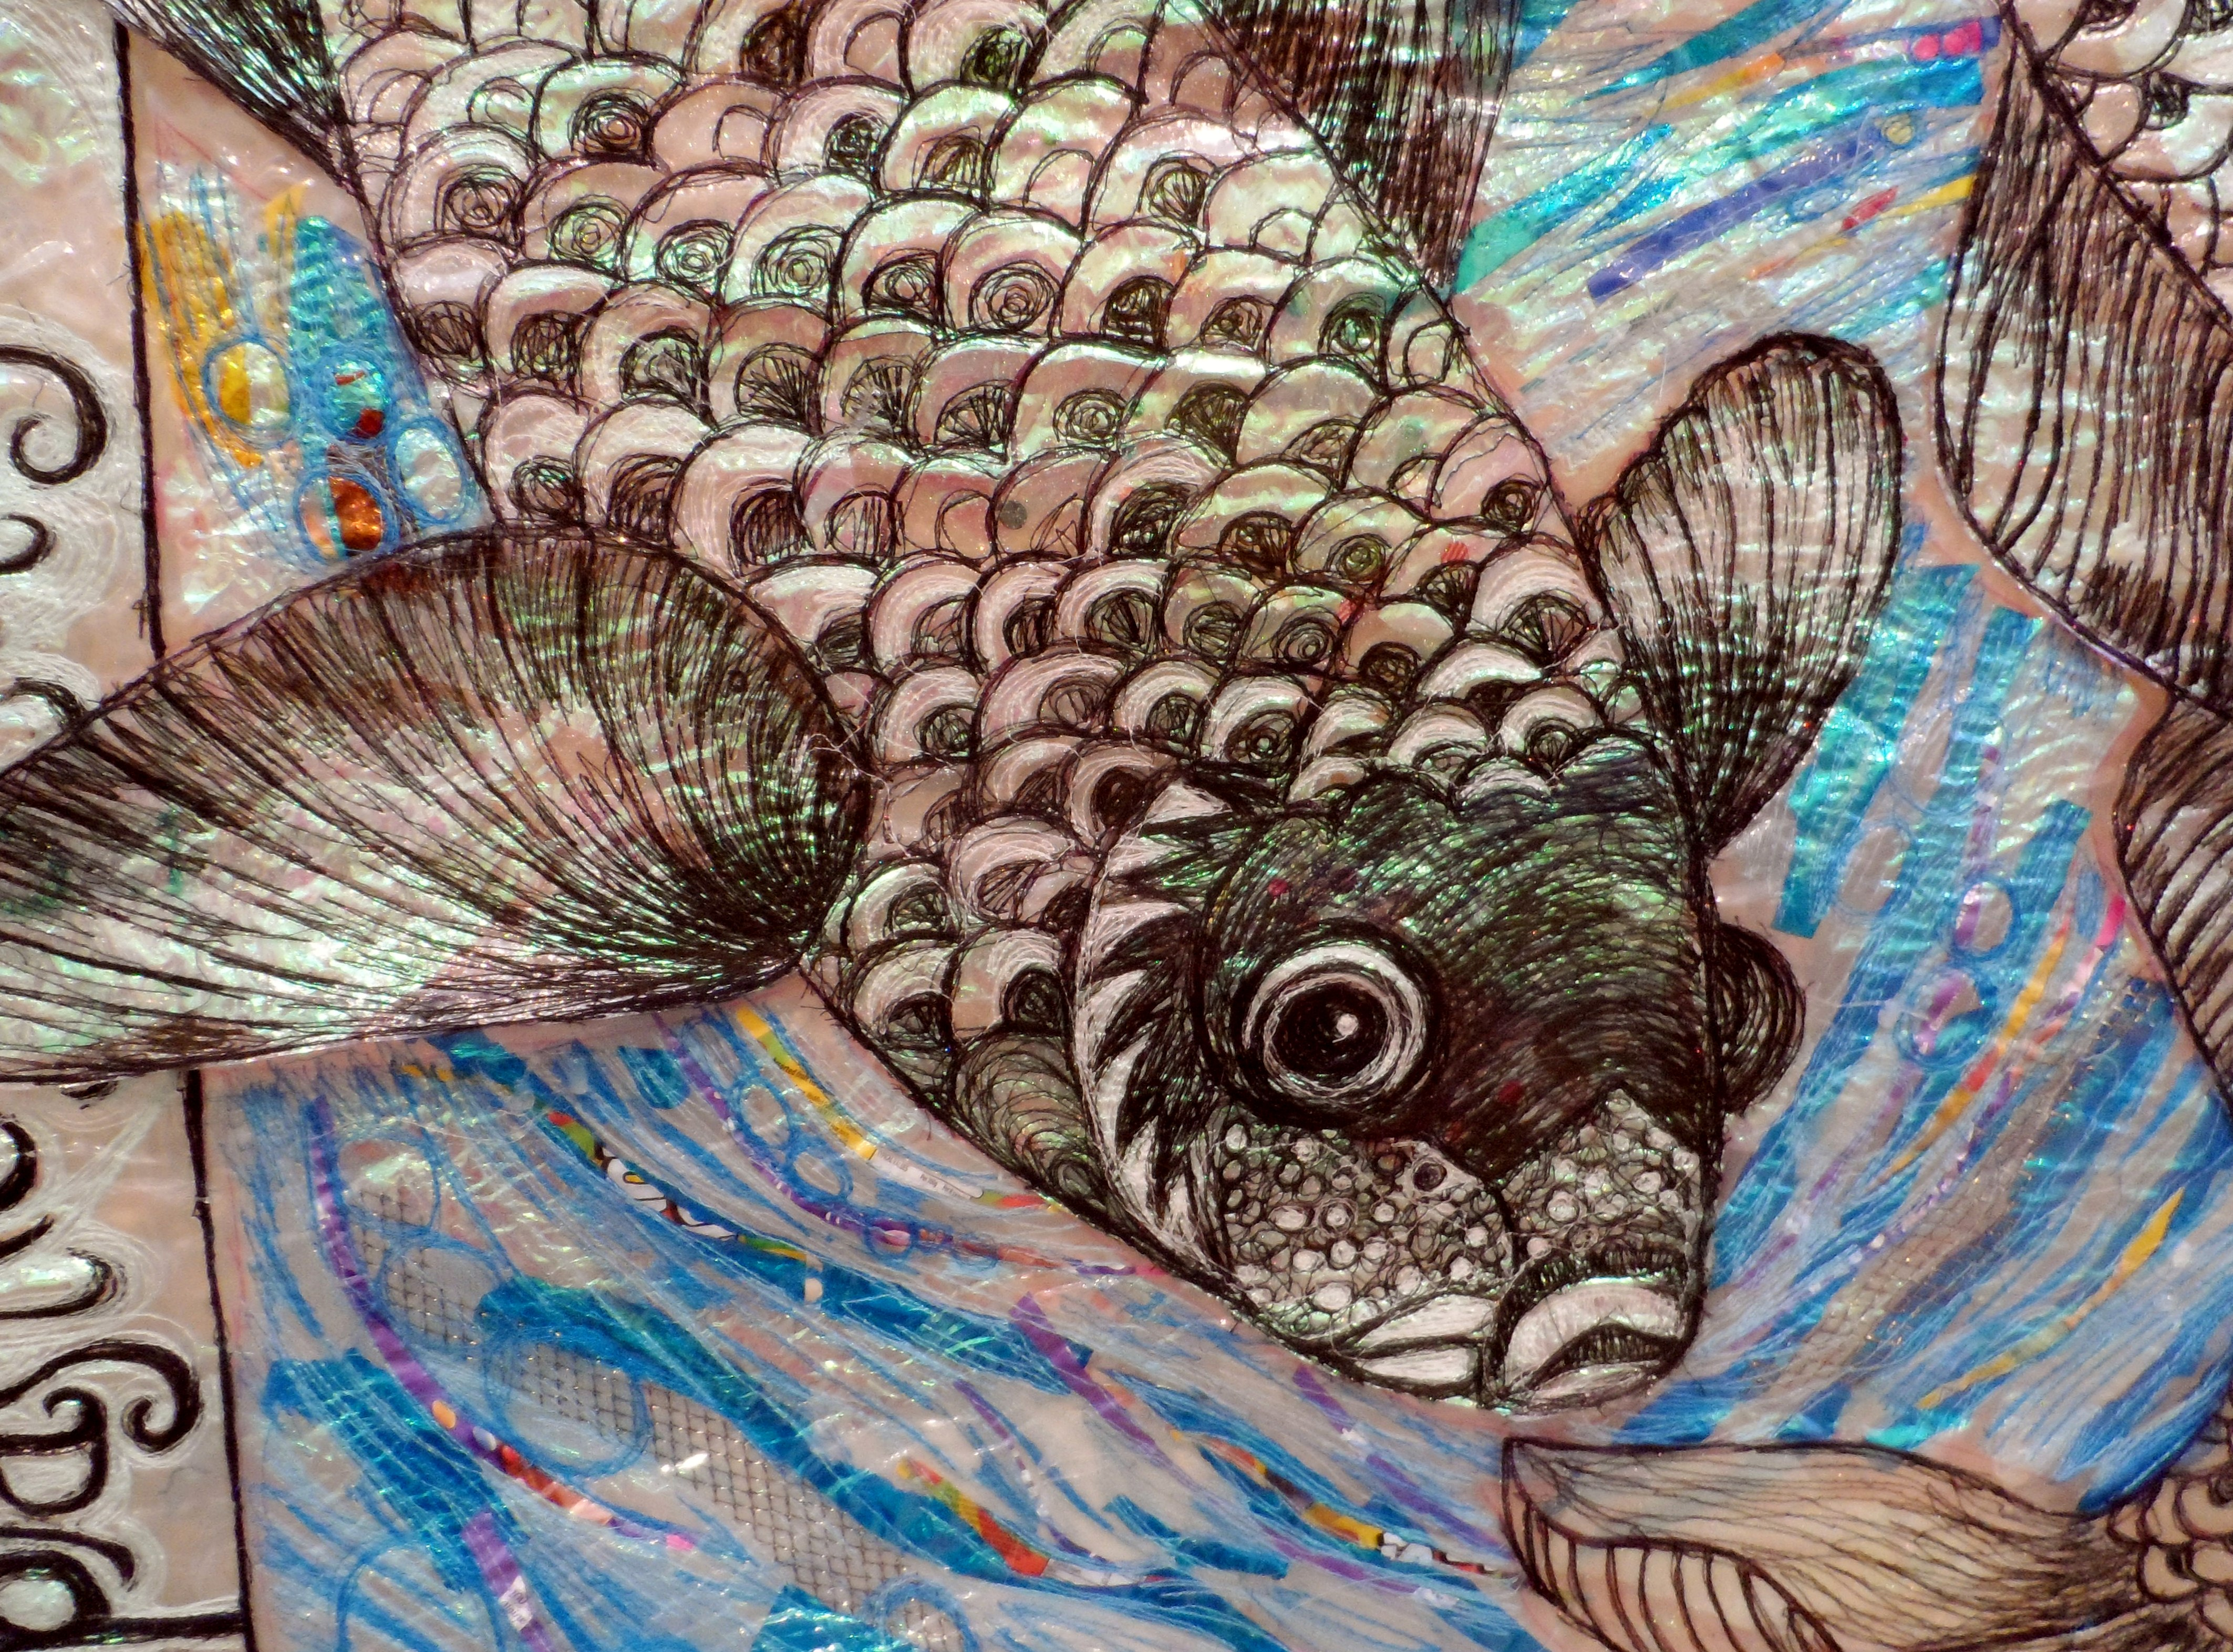 (detail) AND TWO FISHES by Nikki Parmenter, Williamson Gallery, 2019